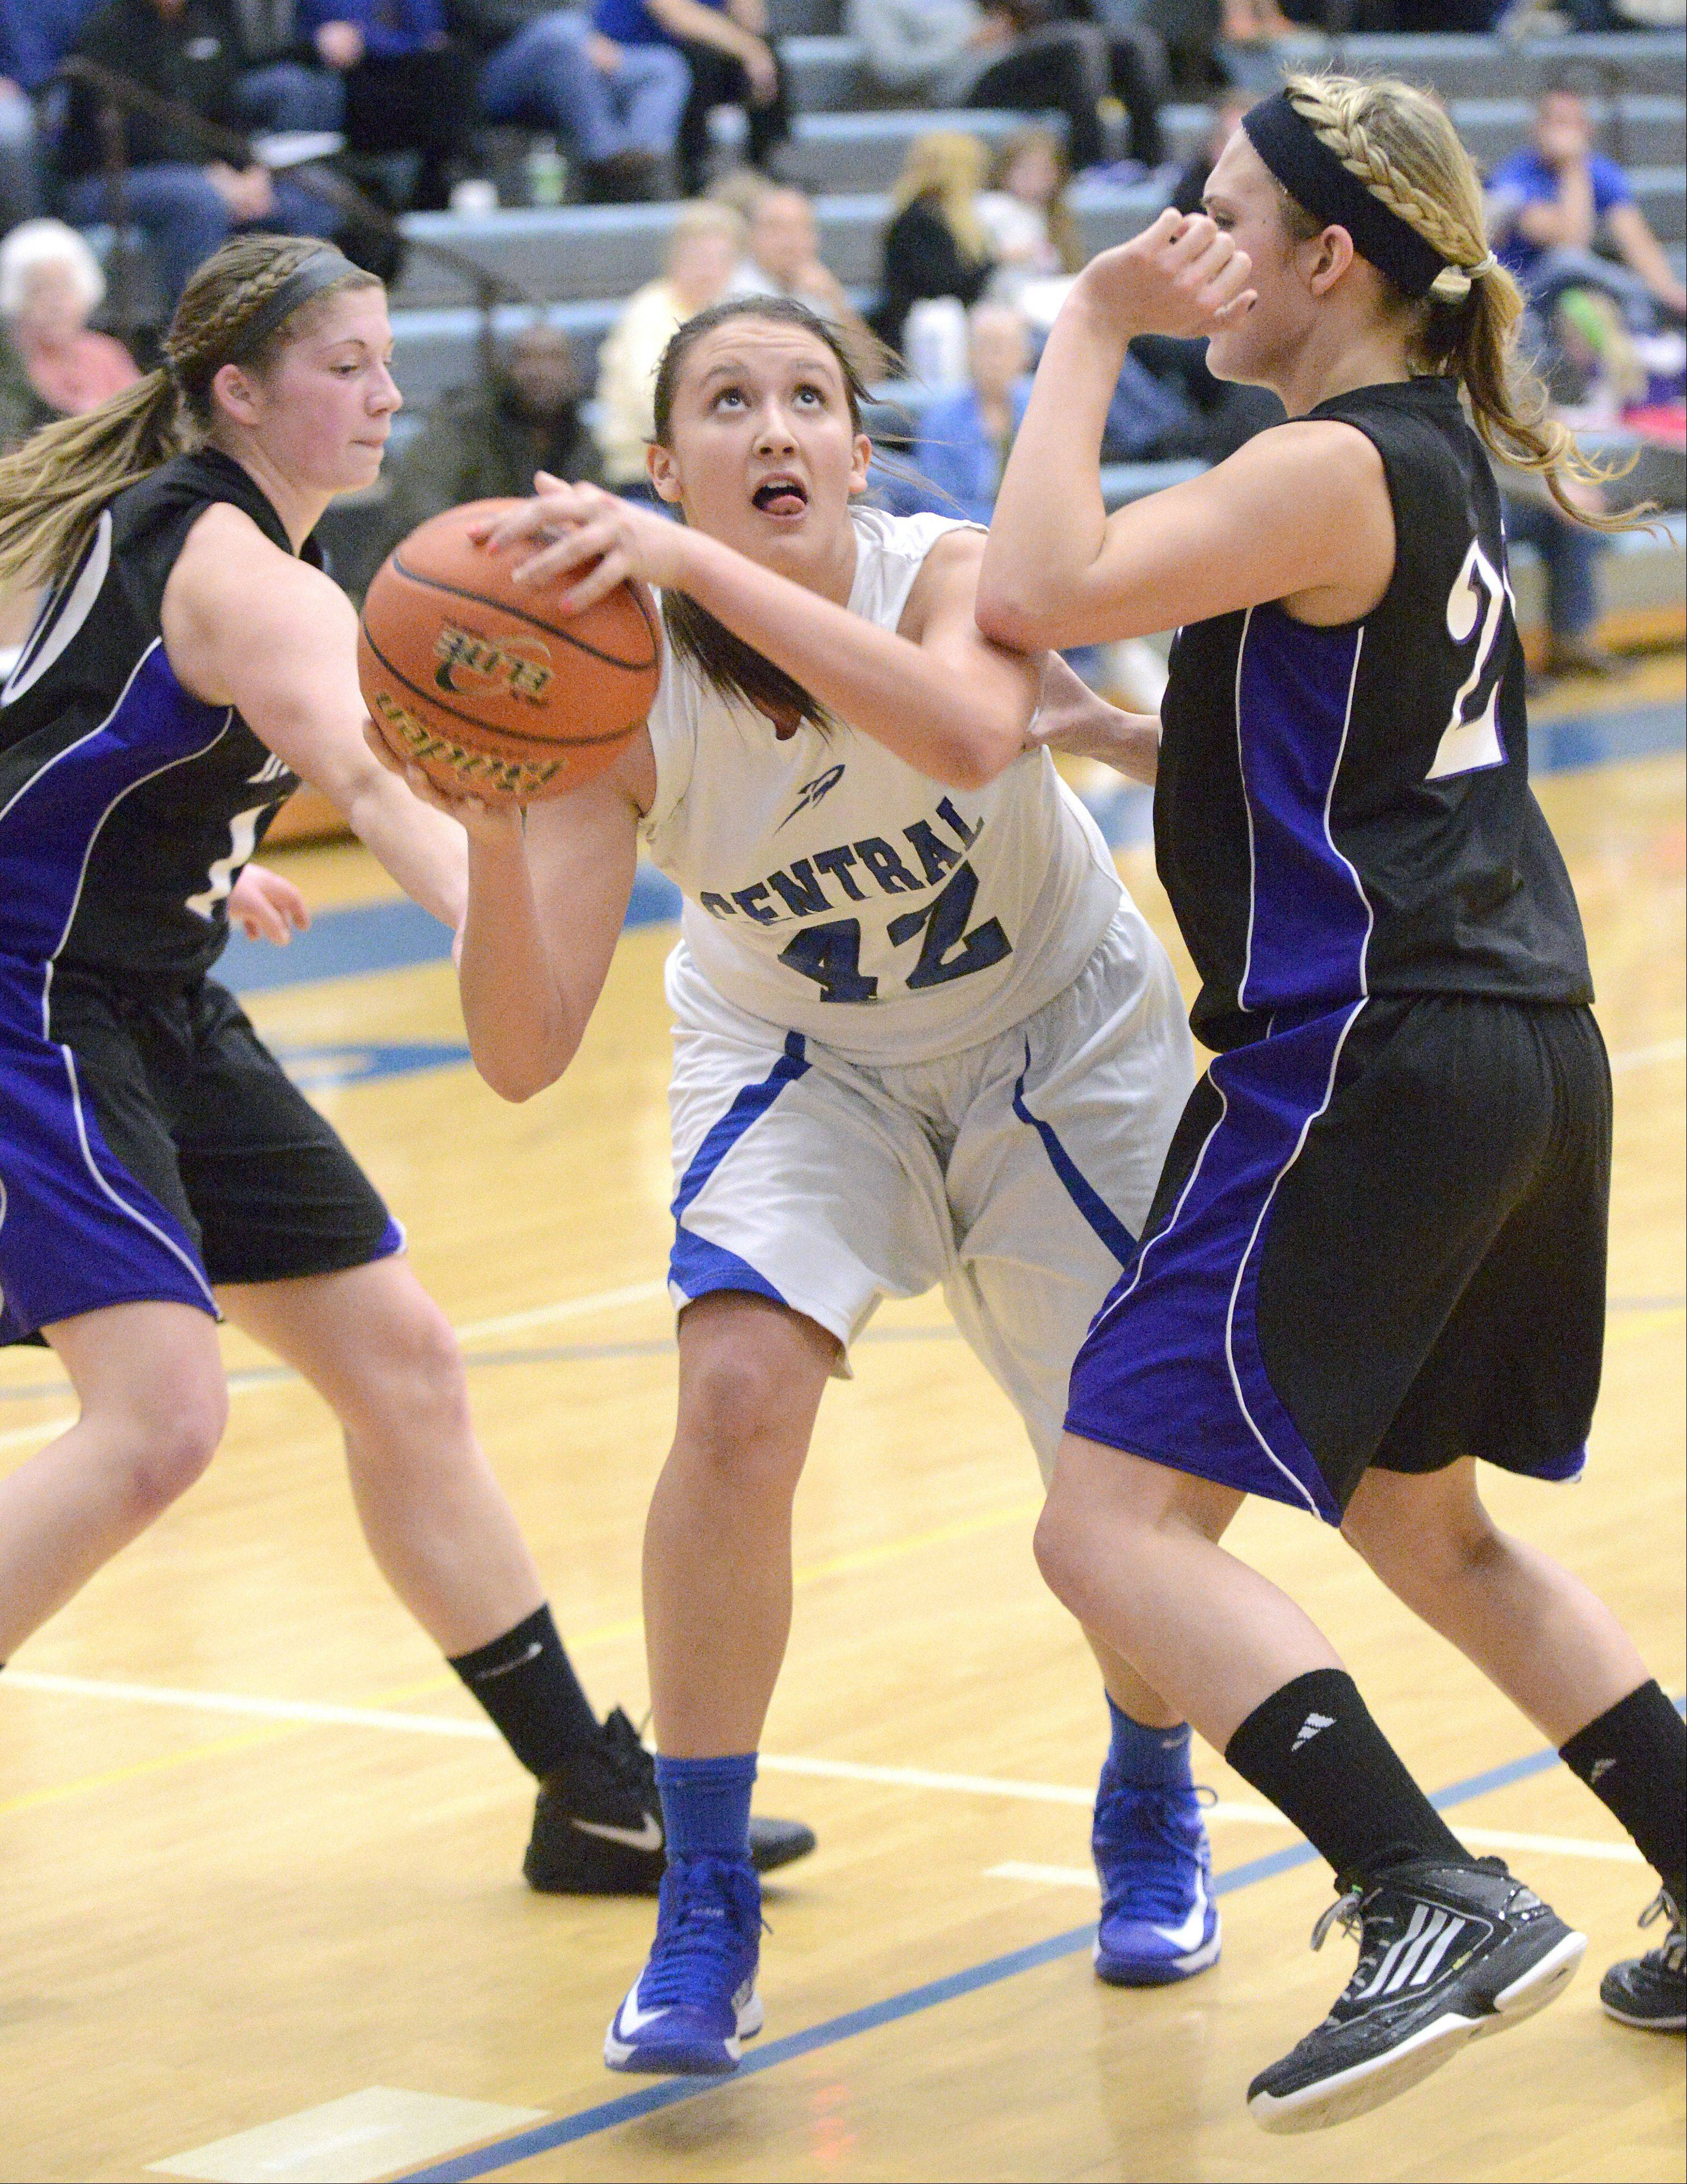 Burlington Central's Alison Colby (42) takes a shot around a block by Hampshire's Lizzy Panzica in the second quarter of the Class 3A regional game on Wednesday.